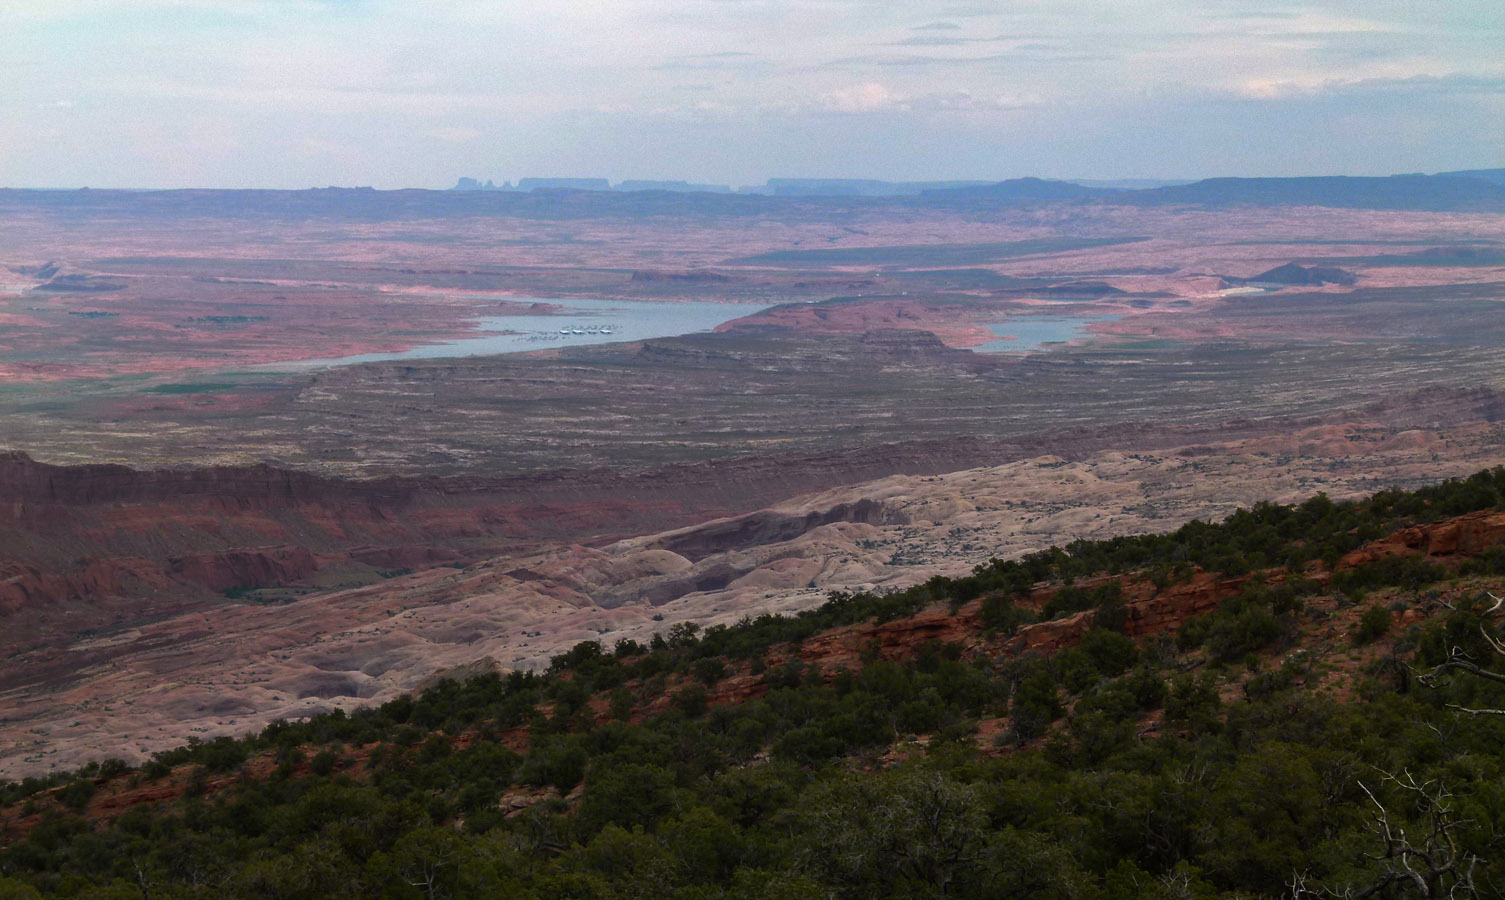 Top of the Fold looking toward Lake Powell